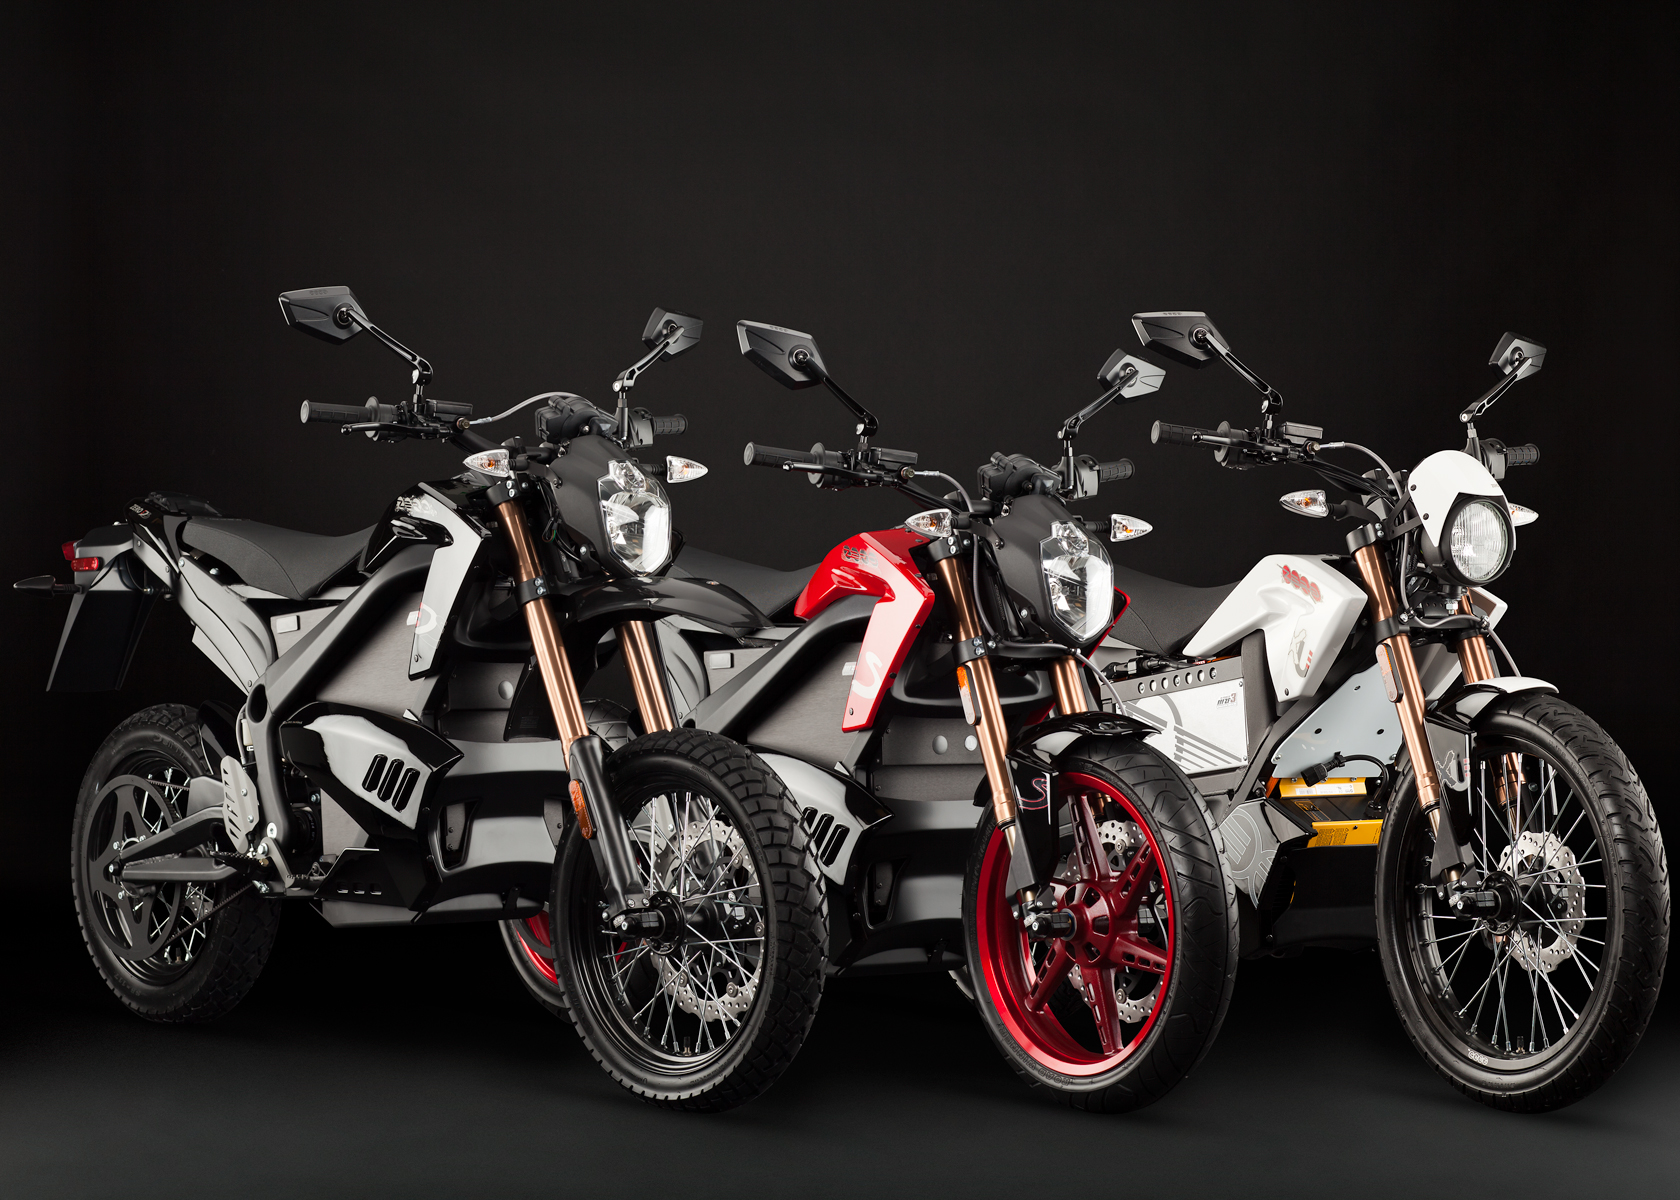 2012 Zero Motorcycles: Product Line